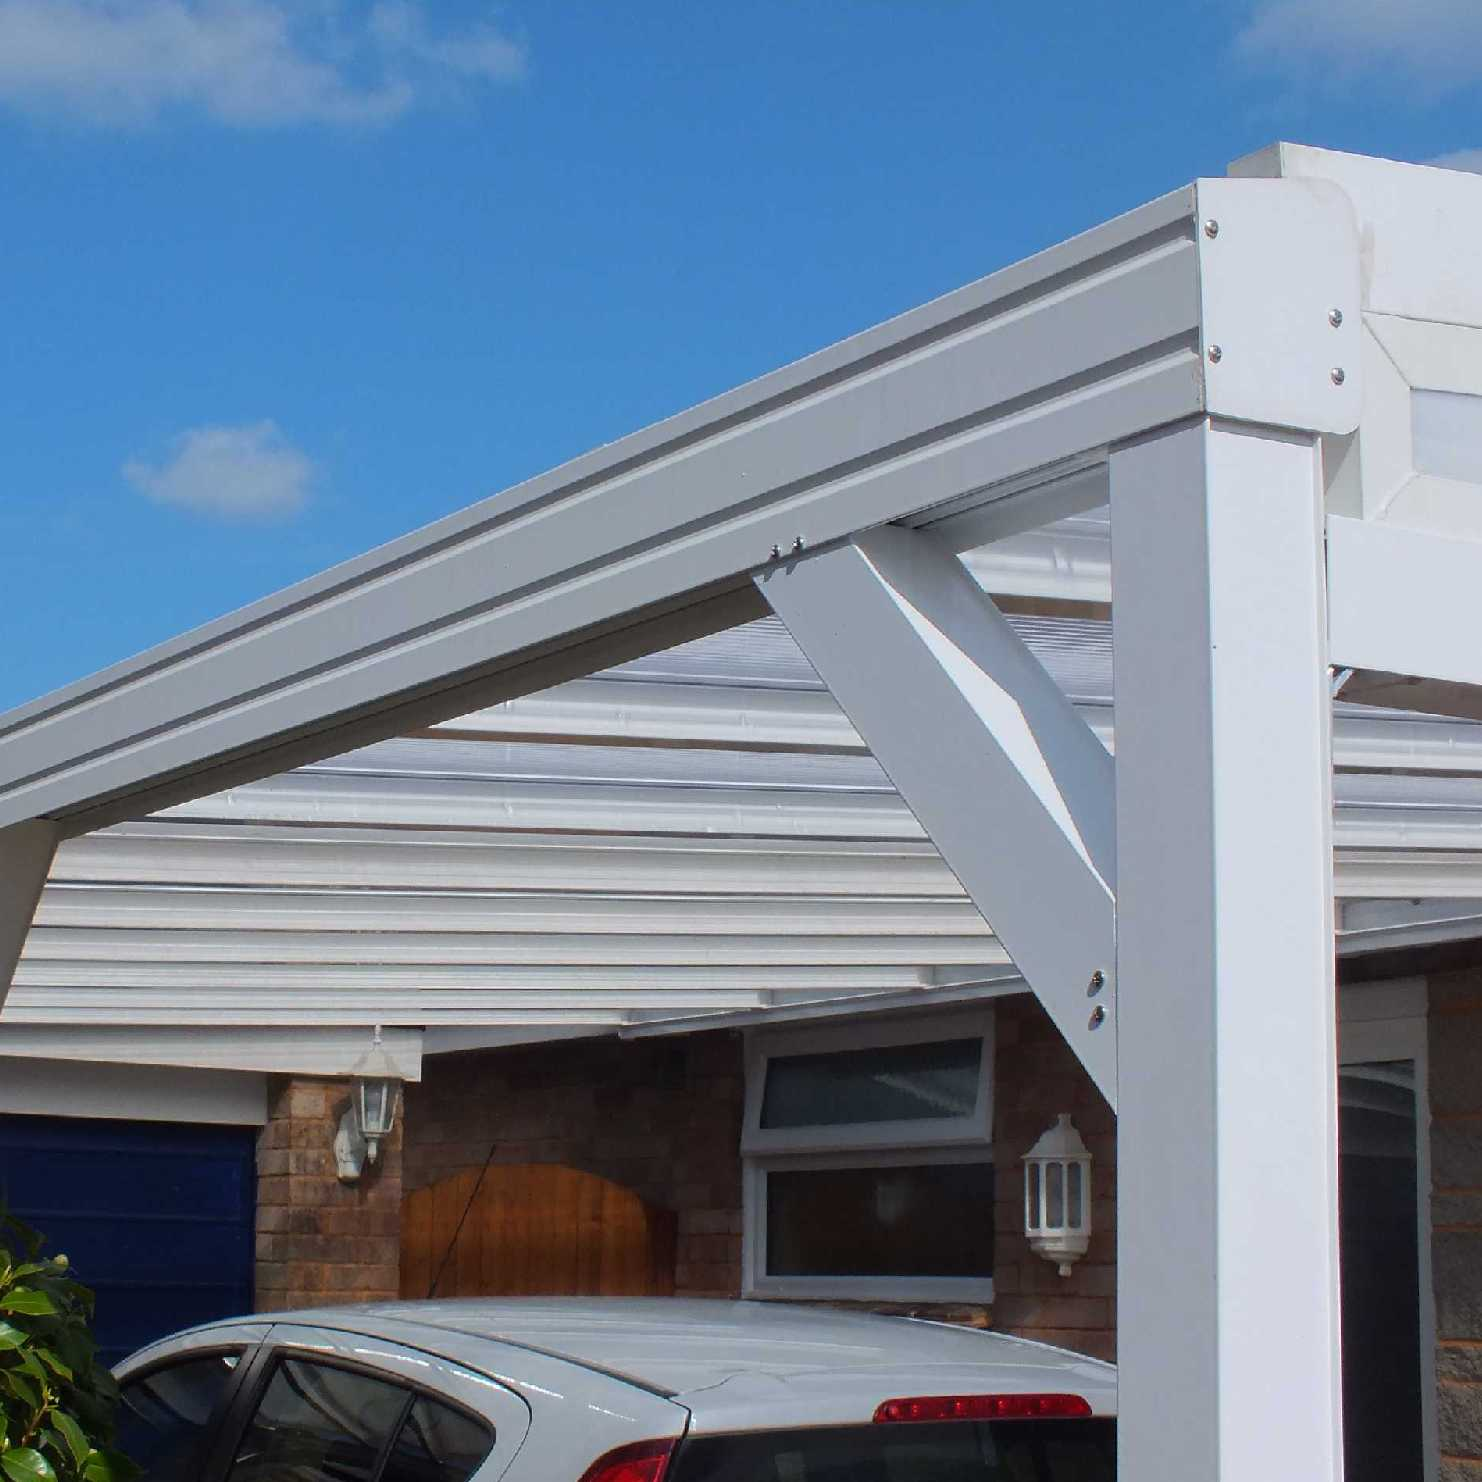 Great deals on Omega Smart Lean-To Canopy with 16mm Polycarbonate Glazing - 9.2m (W) x 4.0m (P), (5) Supporting Posts